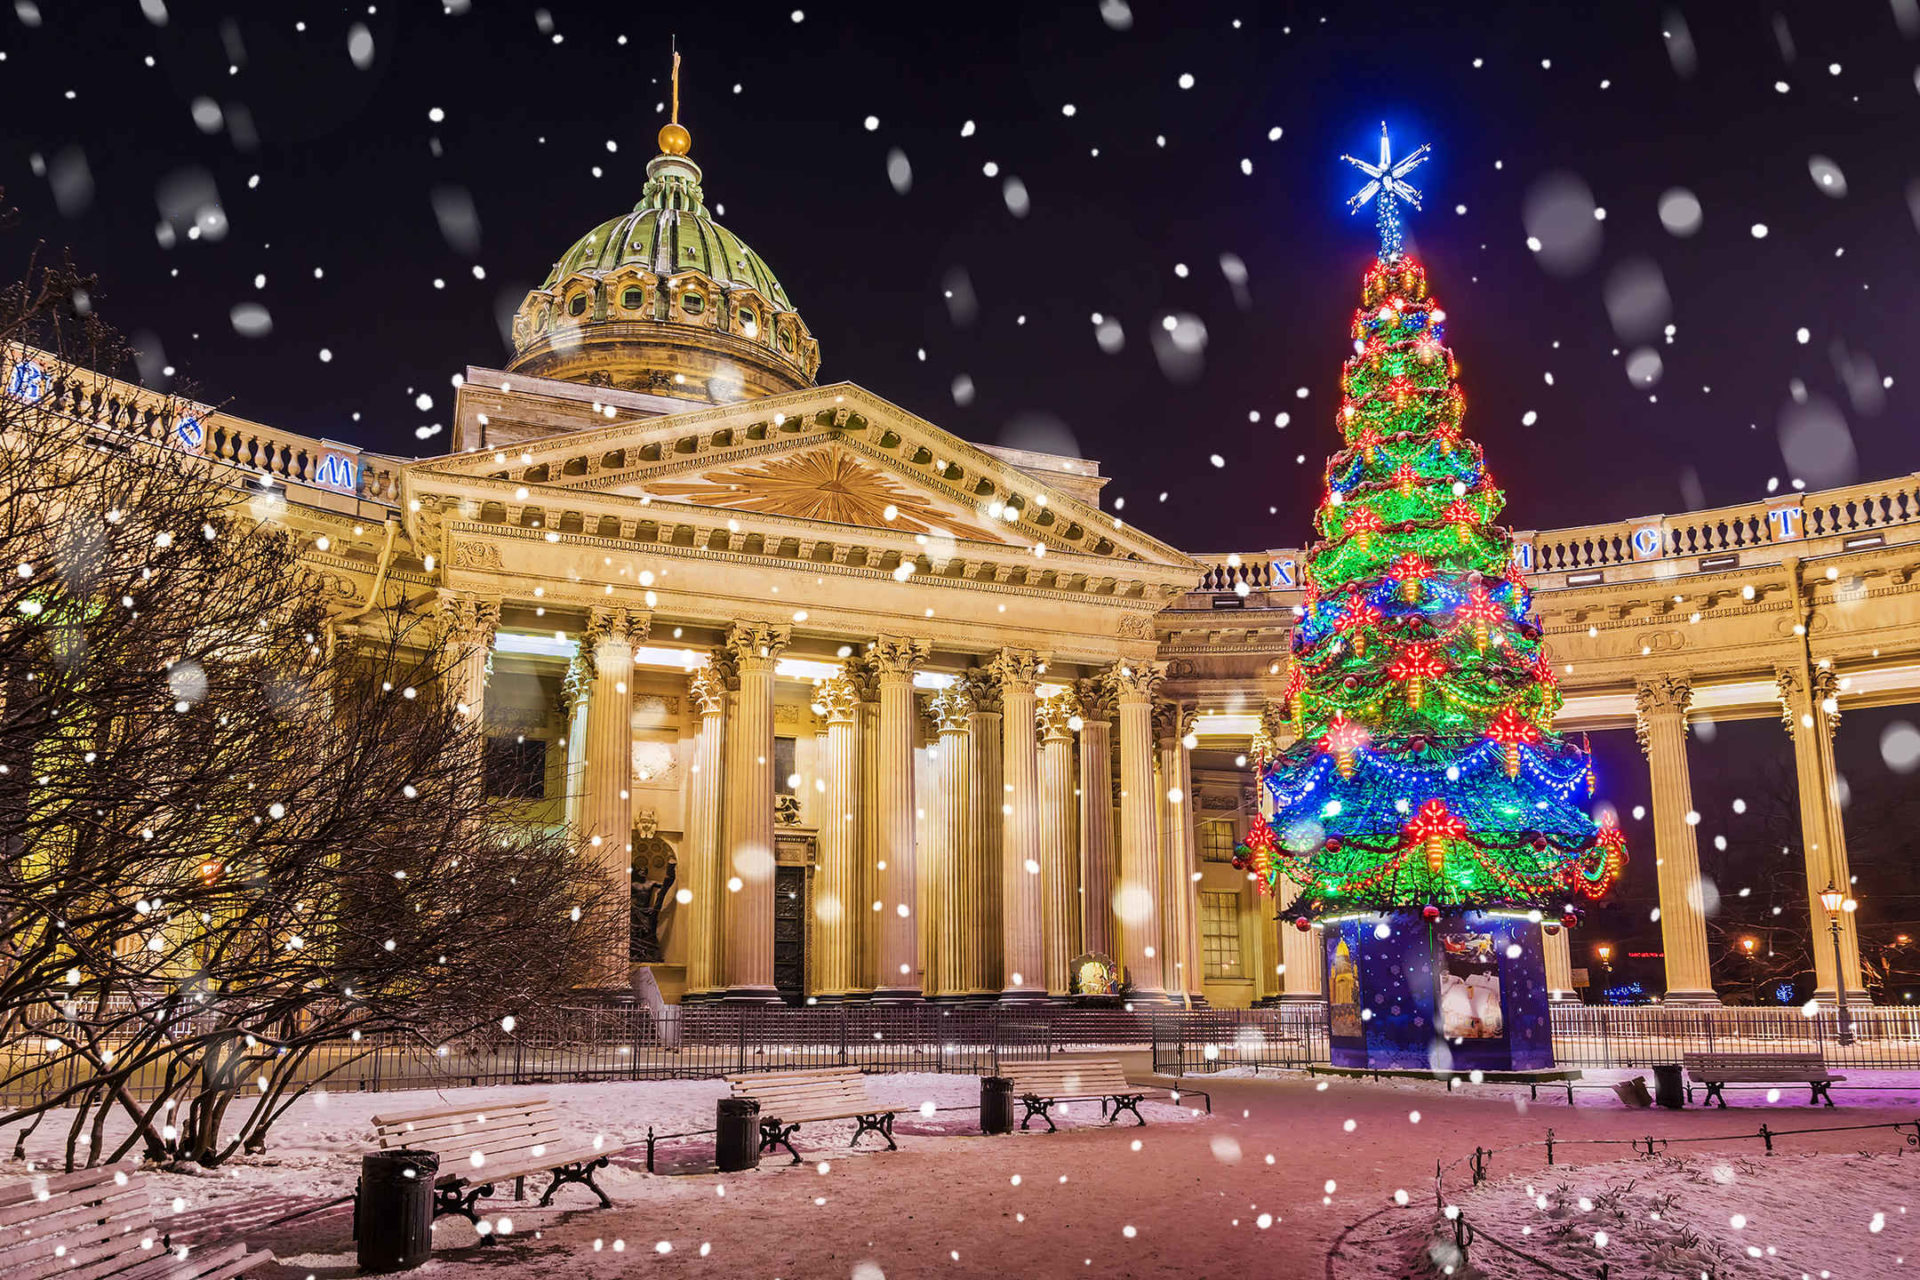 Christmas Trees Decorations HD Wallpapers   GoodTimes 1920x1280